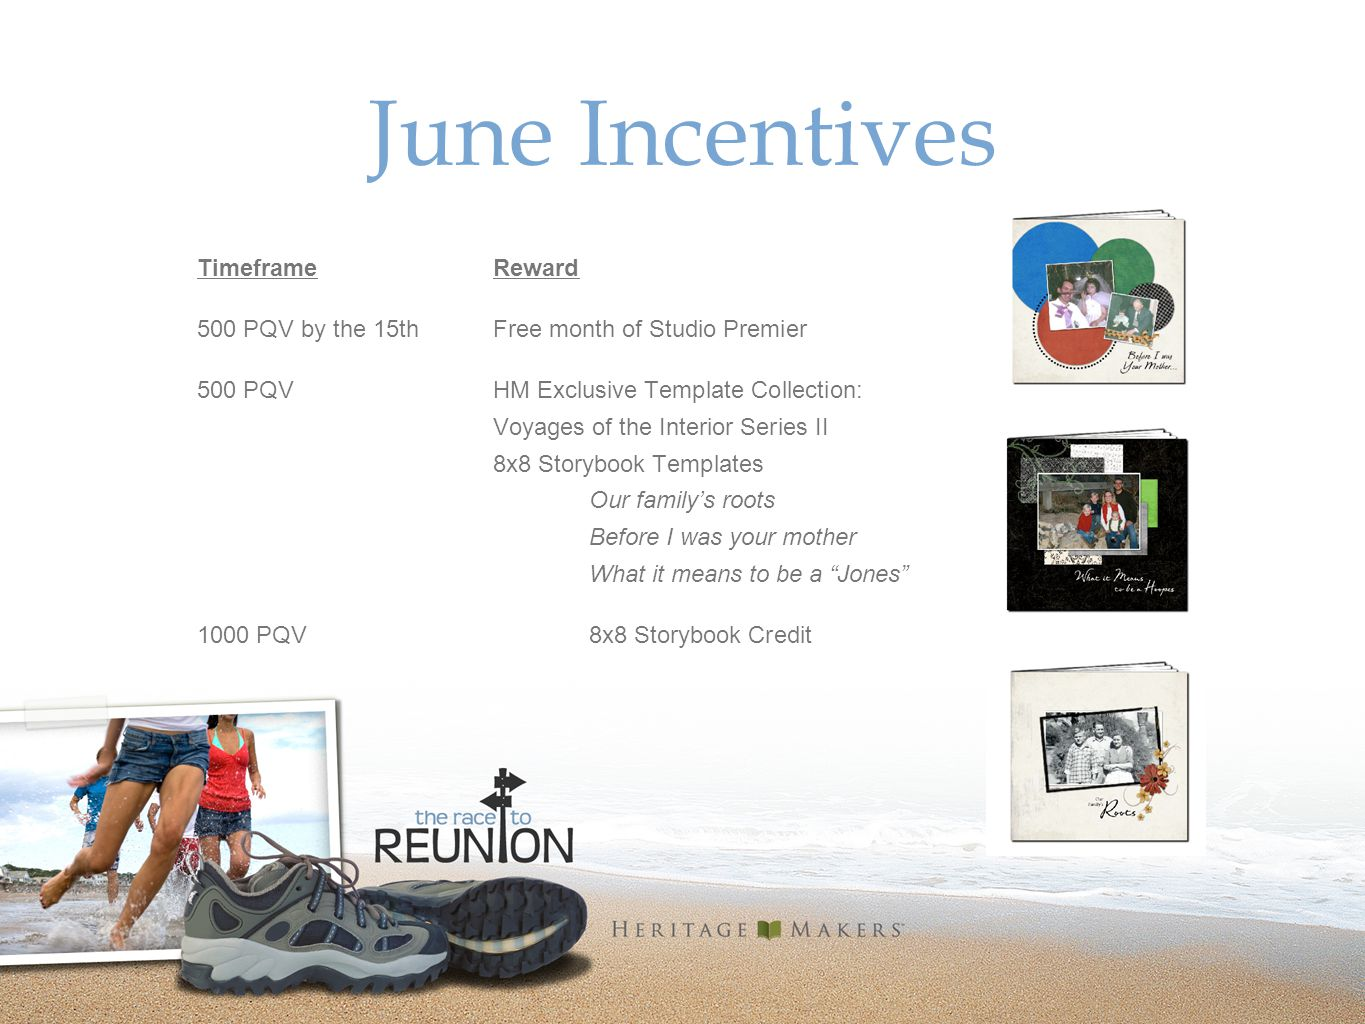 June Incentives TimeframeReward 500 PQV by the 15th Free month of Studio Premier 500 PQVHM Exclusive Template Collection: Voyages of the Interior Series II 8x8 Storybook Templates Our familys roots Before I was your mother What it means to be a Jones 1000 PQV8x8 Storybook Credit